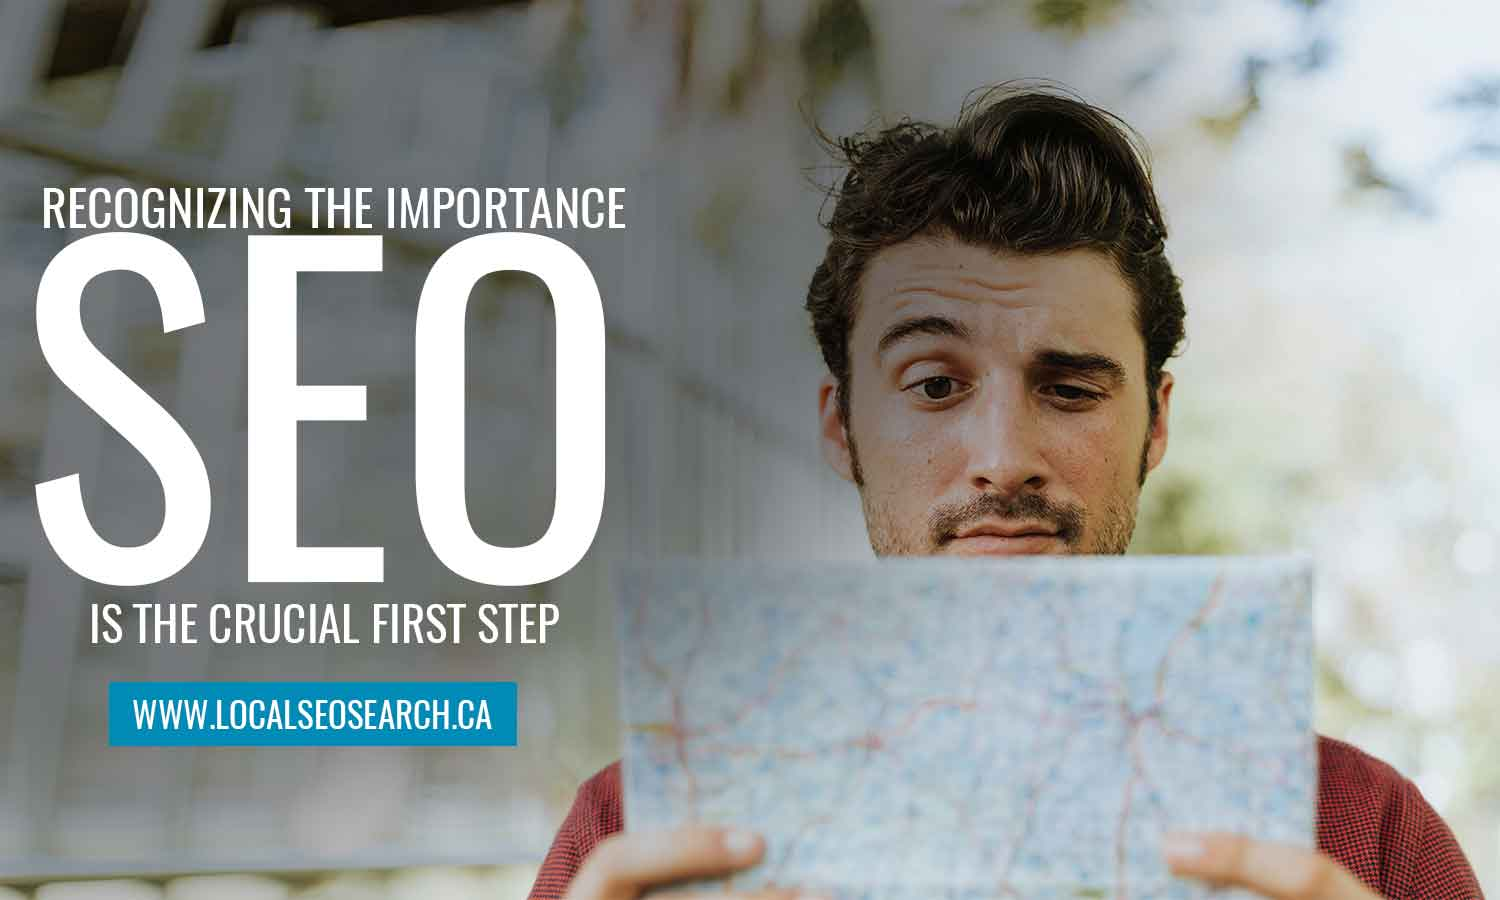 Recognizing-the-importance-of-SEO-is-the-crucial-first-step